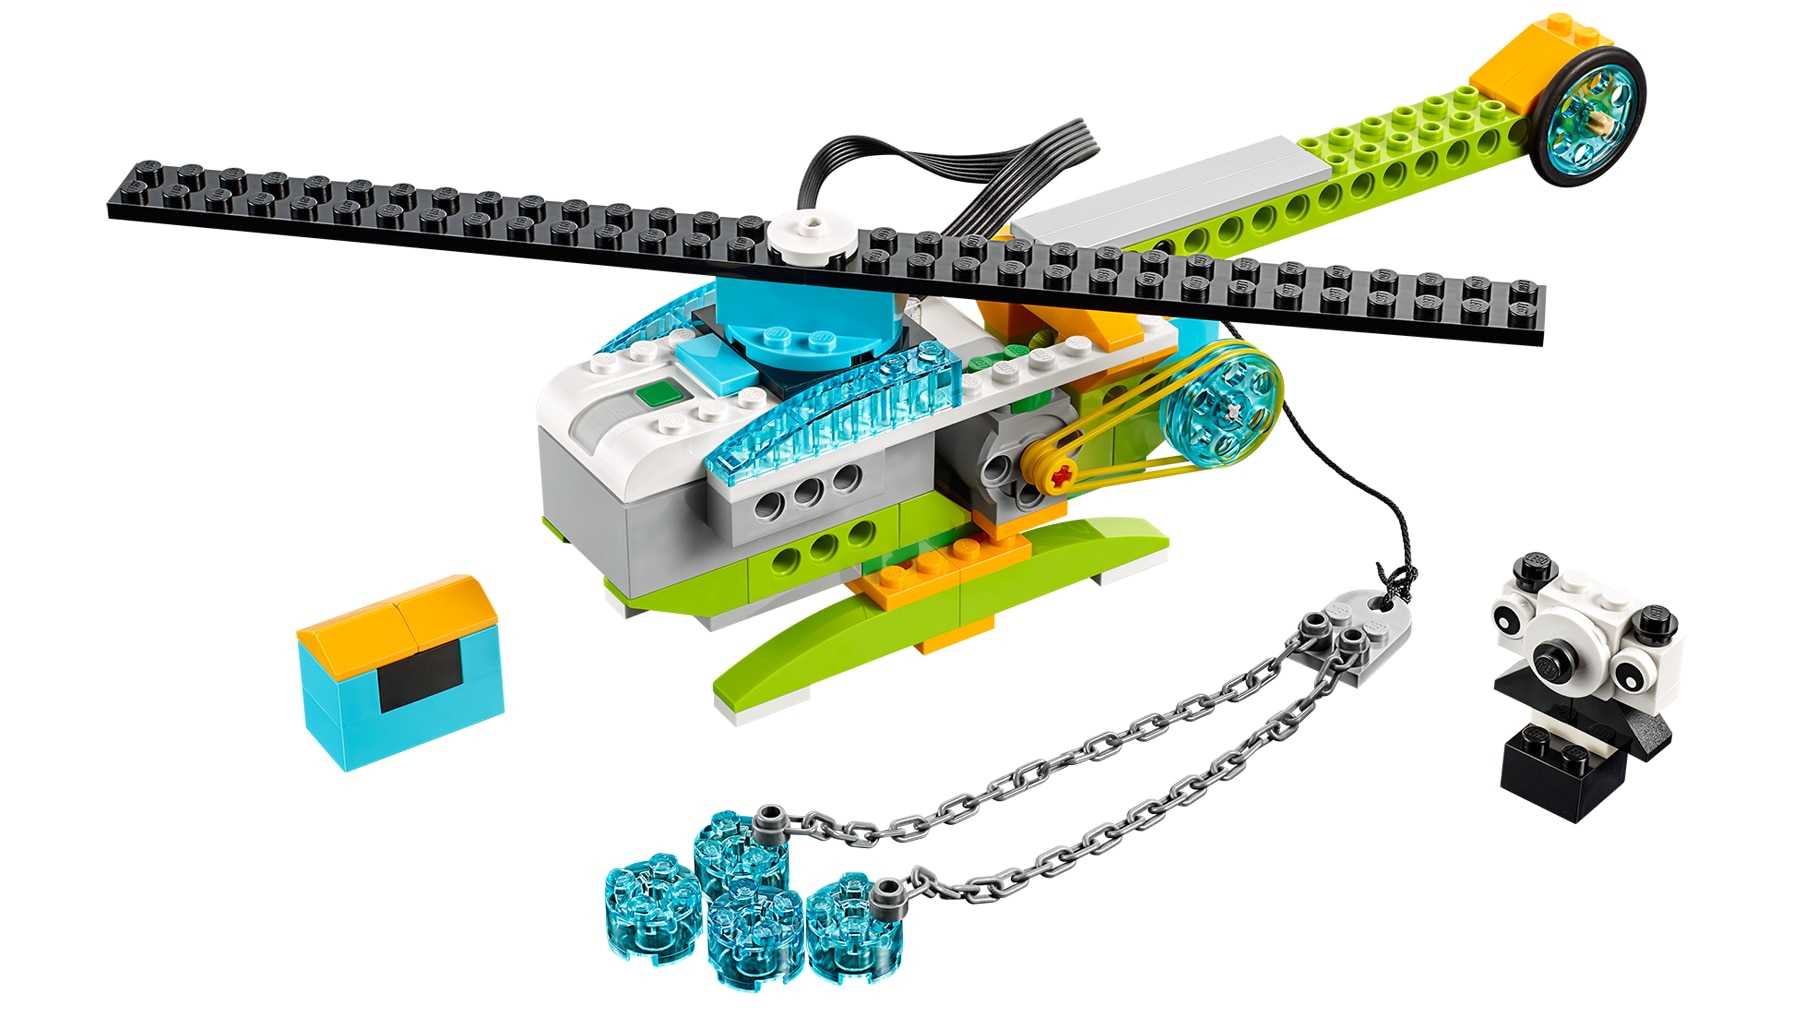 Drop and rescue wedo 2. 0 science lesson plans lego education.